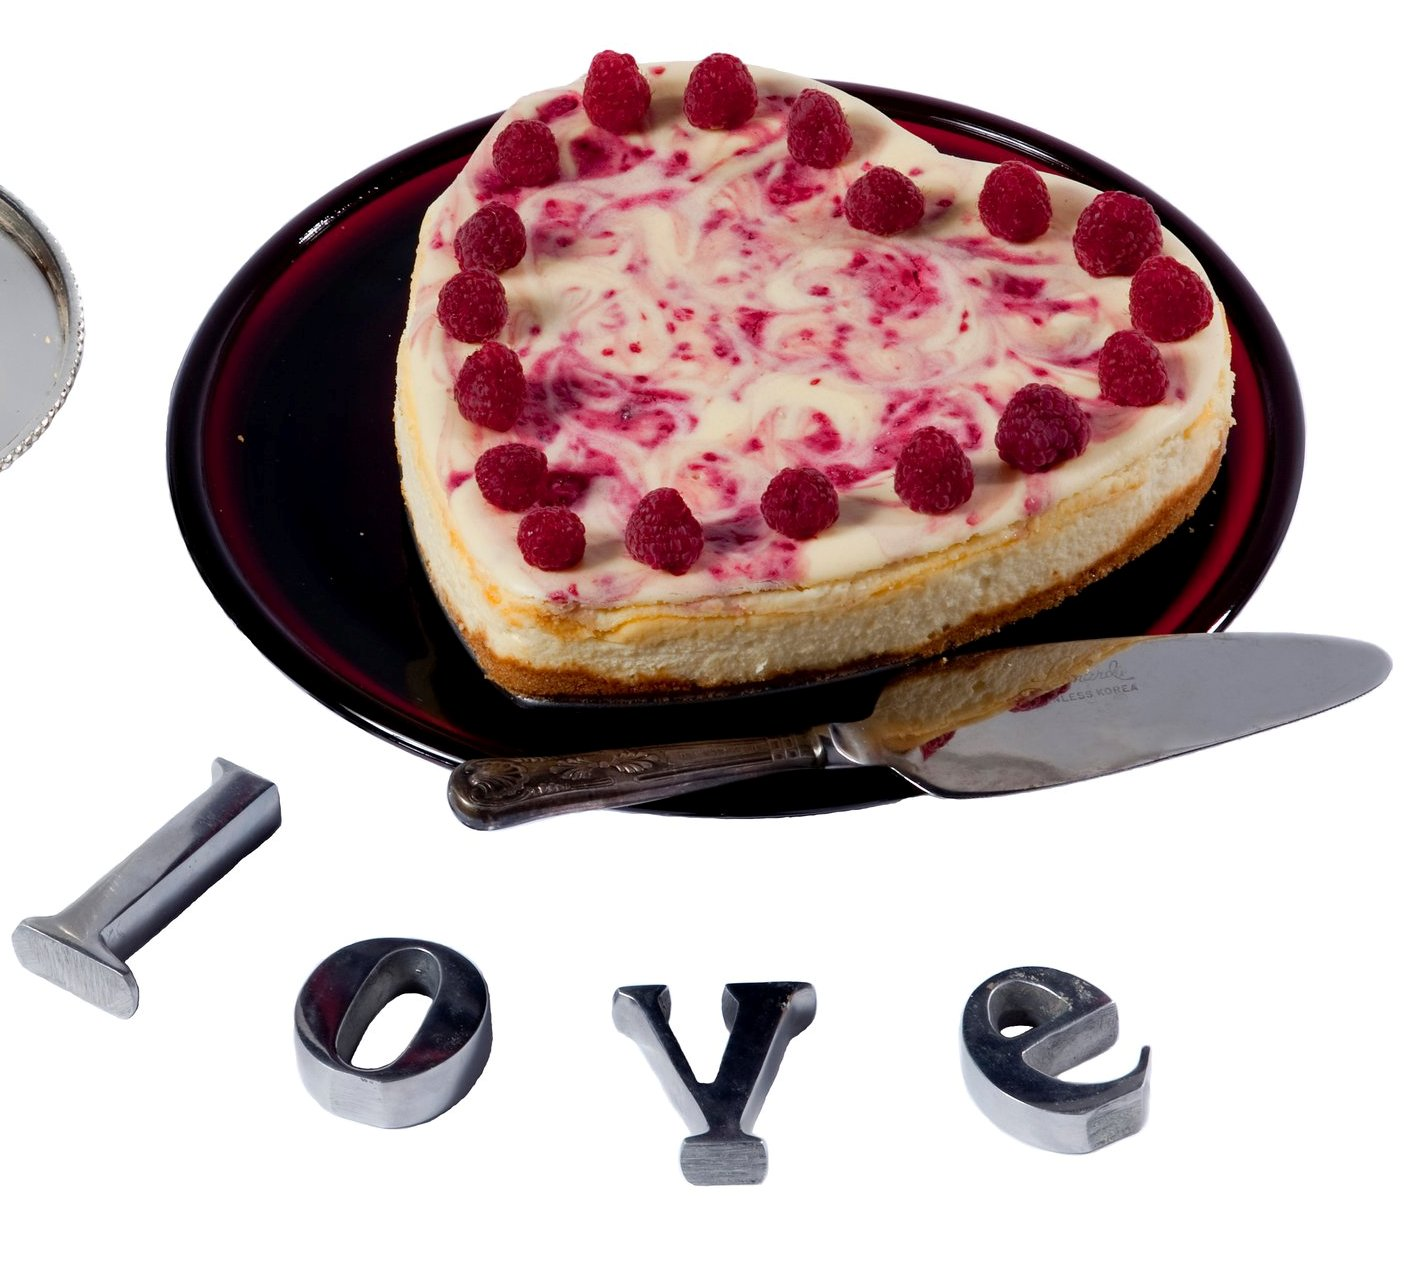 "For Valentines Day, we have an array of options to make anyone's heart sing!  - 9"" Heart Shaped Cheesecakes are available for $36 in any of our traditional flavors.  - 4.5"" heart shaped cheesecakes are available for $10 in the following flavors: New York, Raspberry Swirl, Chocolate Decadence Or Key Lime.  -Conversation Hearts: 1.5"" heart cheesecakes in a variety of colors (NY flavor only) $24/Dozen.  -Jumbo Minis (not heart shaped) in see thru box with red tissue paper under them and wrapped with a red ribbon:  $20/4 (One of each flavor included: raspberry, chocolate decadence, new york, turtle).   **Gluten free or Vegan available in the 9"" hearts for $10 more.  *  *3 day notice needed. We will have some stocked, on a first come basis, between Feb. 10-14**  We are open extended hours on the 13th and 14th of February."